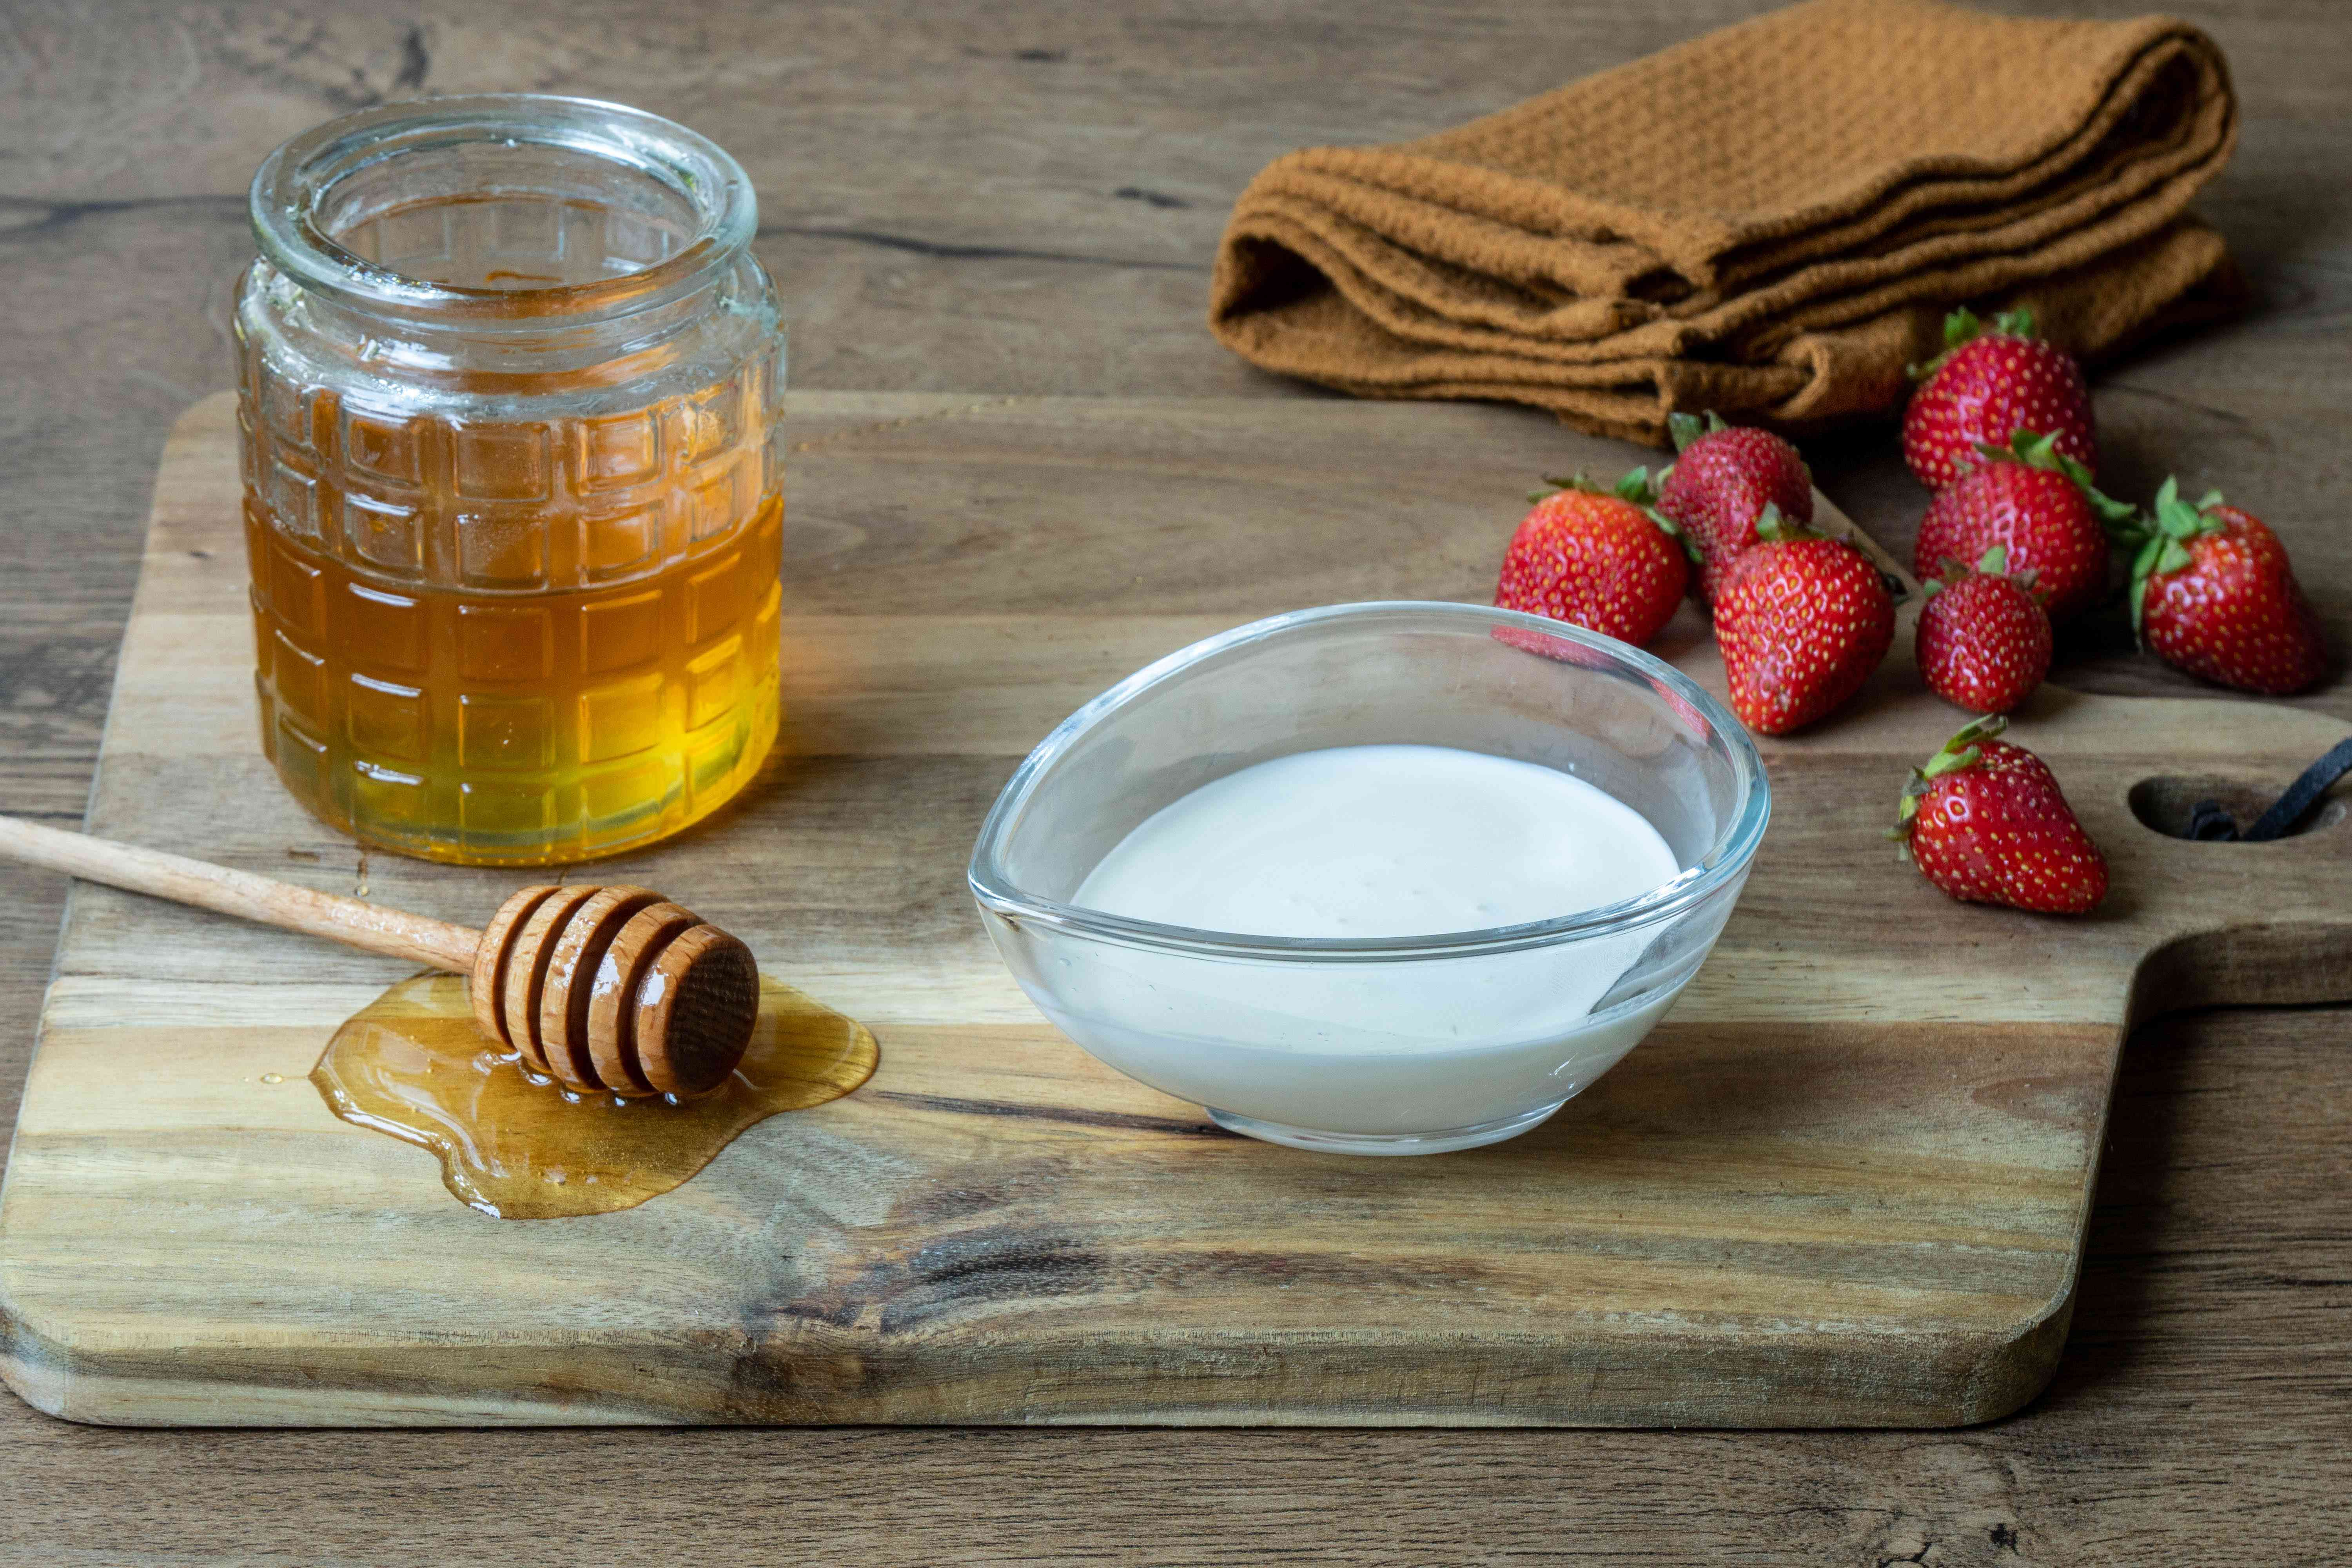 glass jar of honey, dipper, heavy cream, and fresh strawberries on wooden cutting board